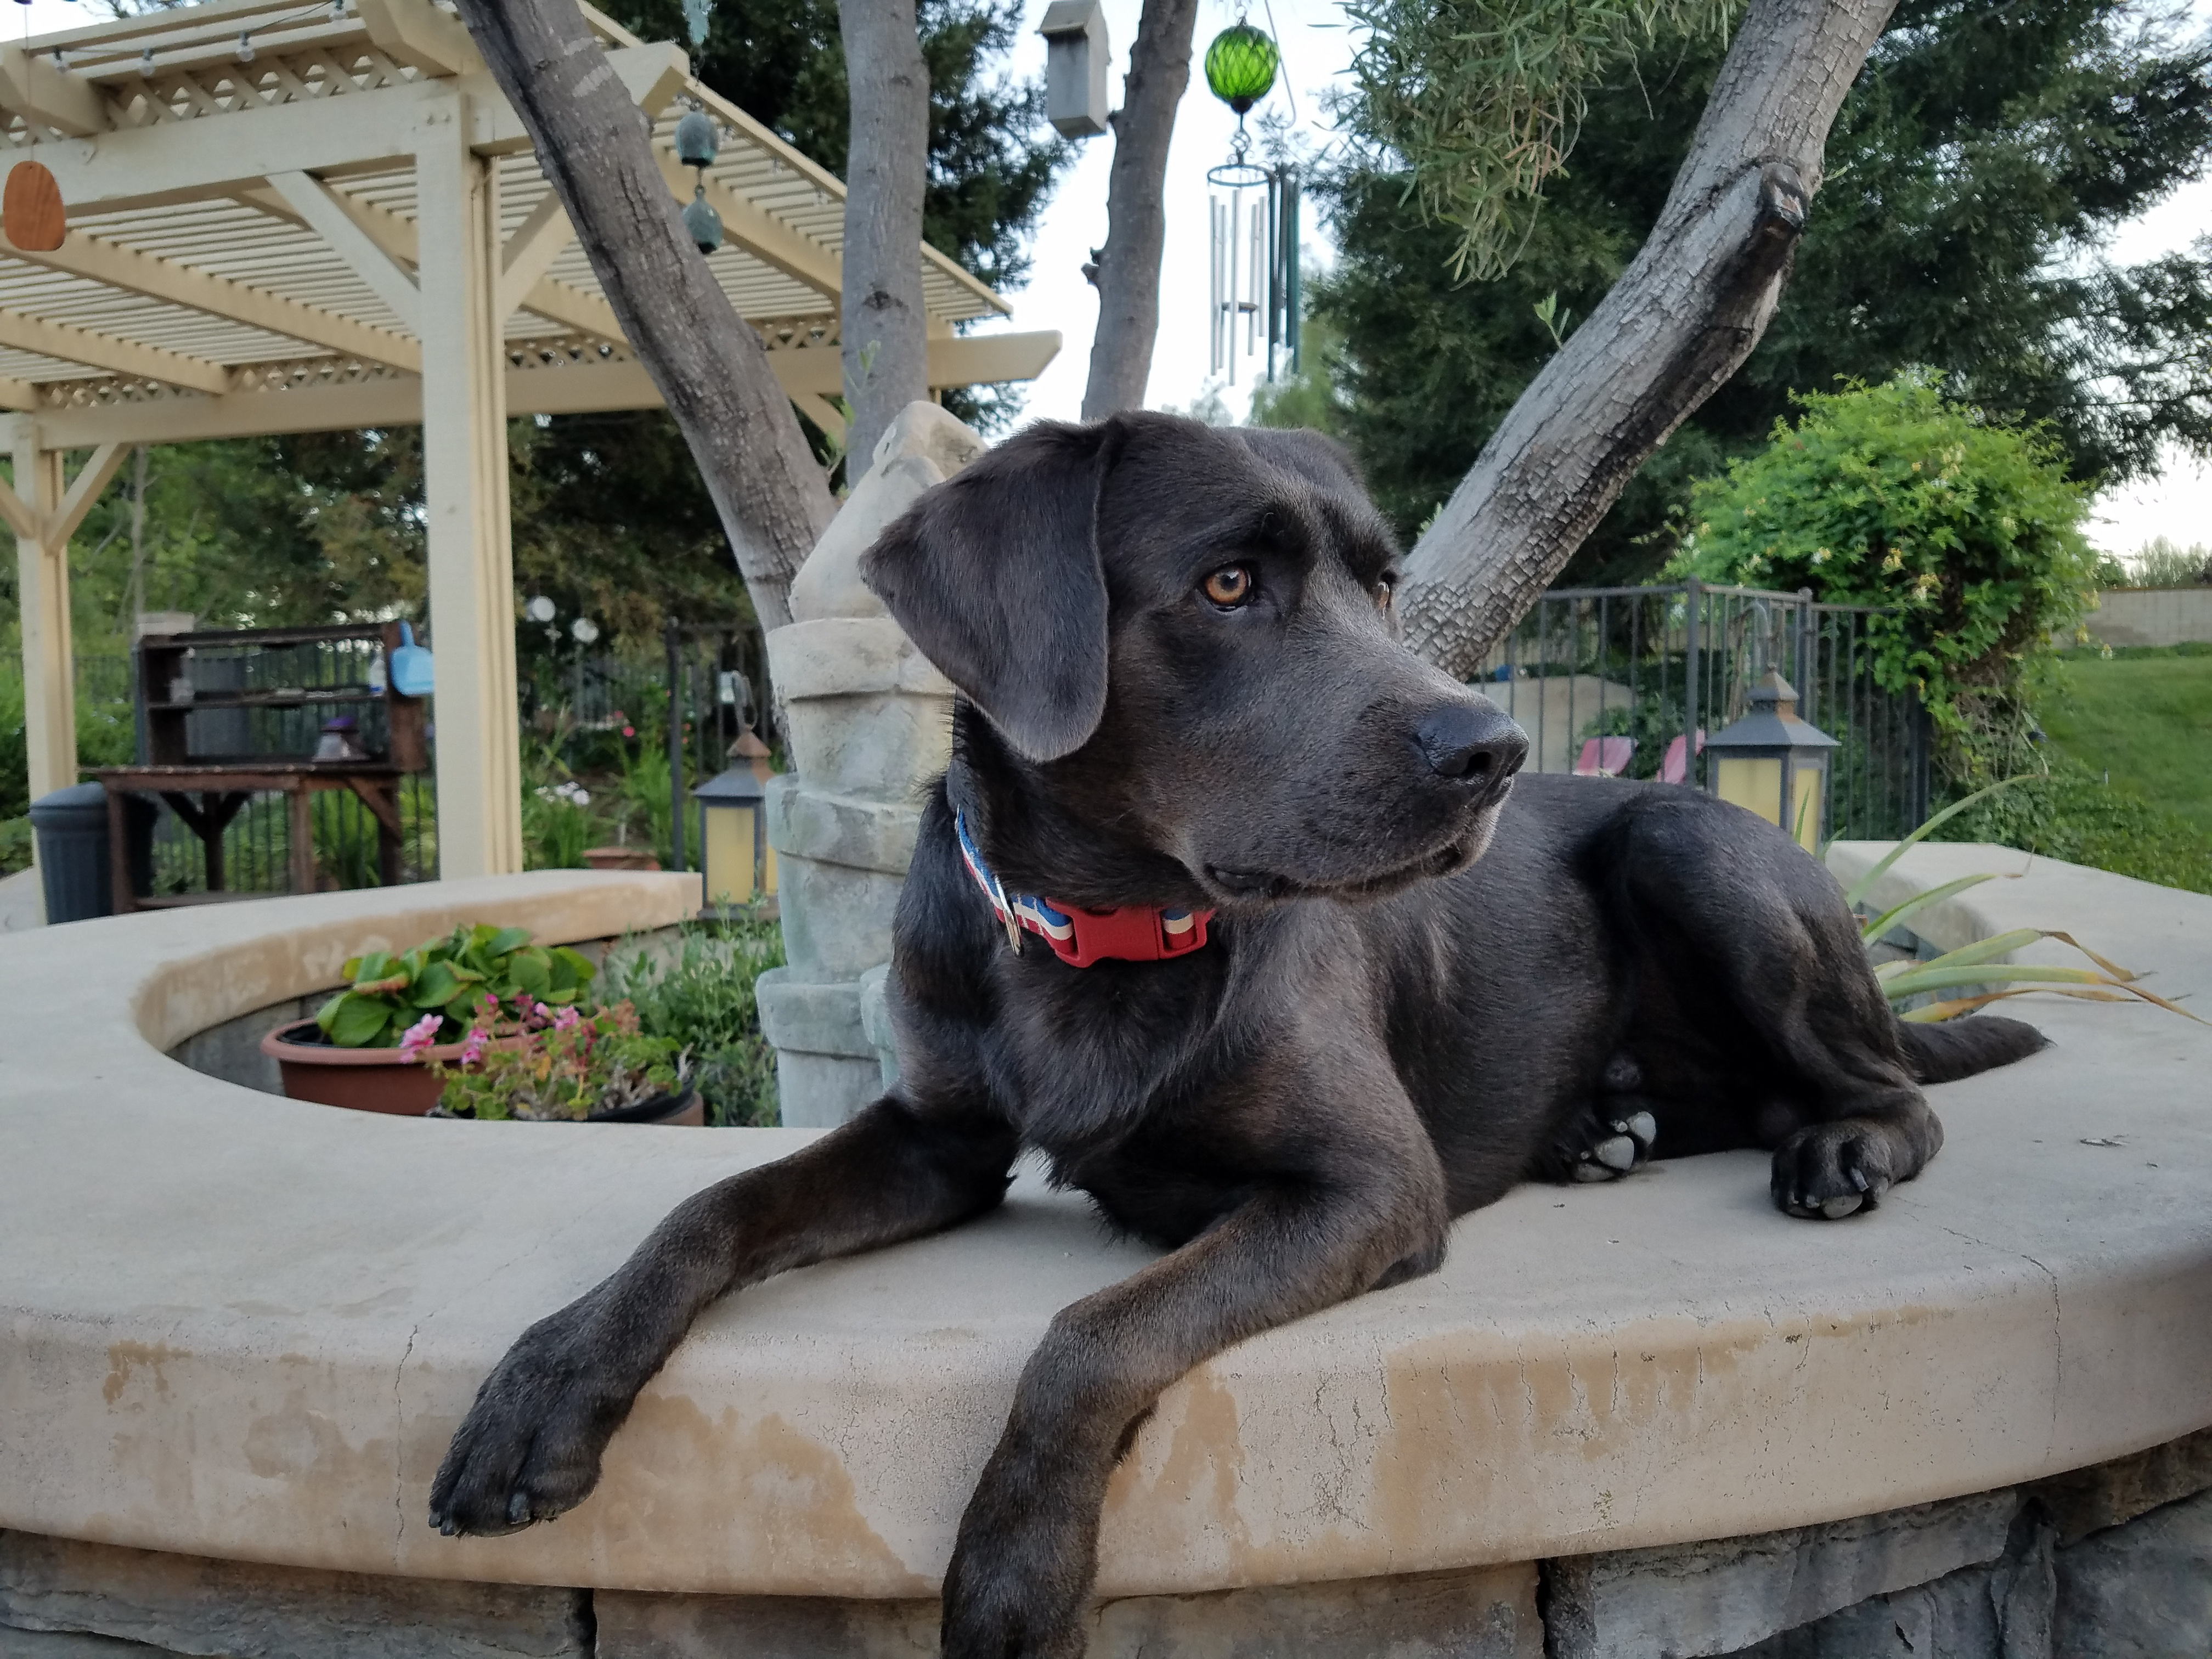 A black dog sitting on a planter.